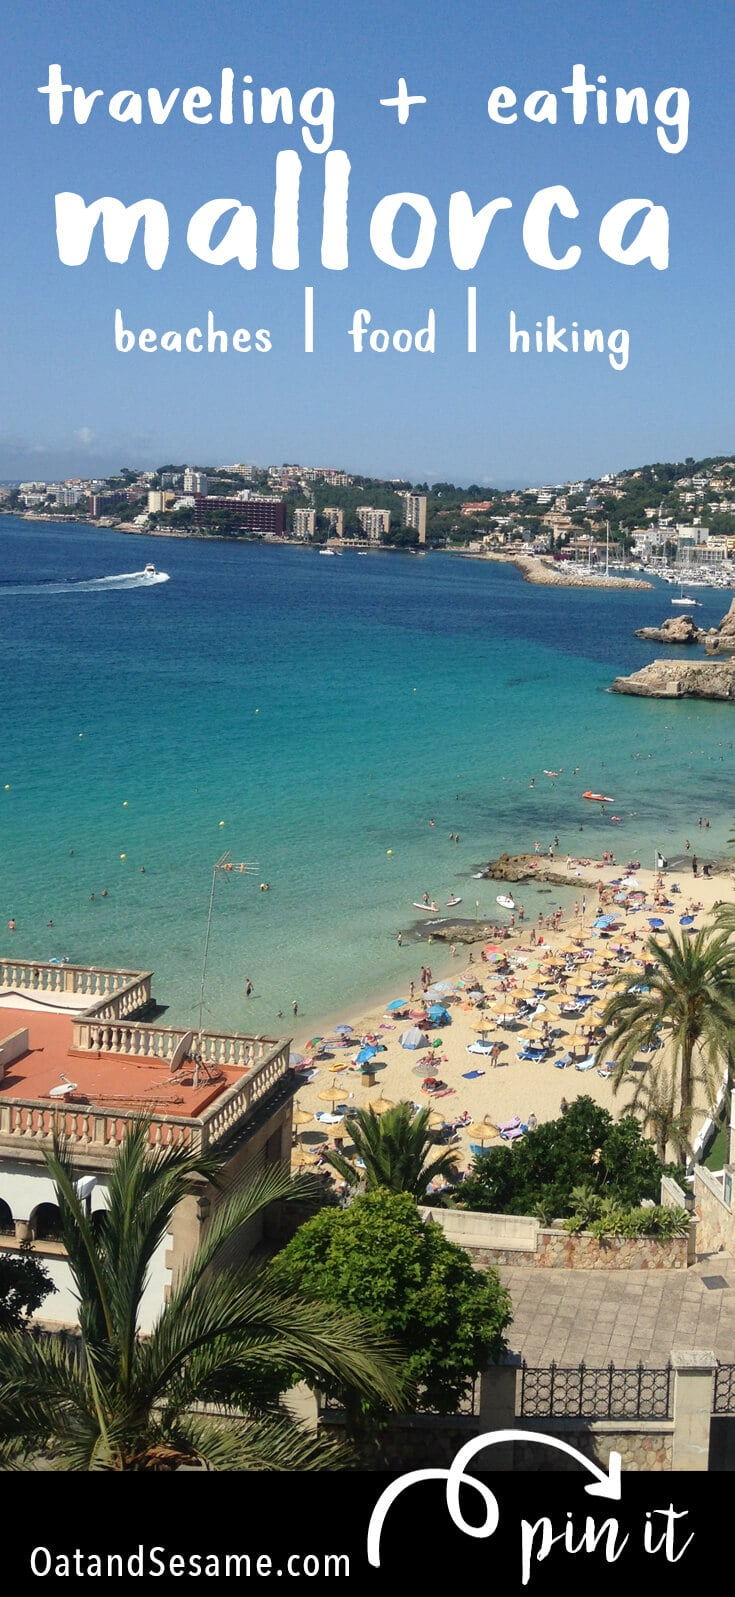 Beaches, Shopping, Art, Nature - the island of Mallorca has it all. Centralized around the main city of Palma, a quick hop in a rental car will have you hiking in dry, rocky mountains with cliffs overlooking the sea and making your way to hidden unspoiled beaches.   #TRAVEL   #SPAIN   #MALLORCA   OatandSesame.com